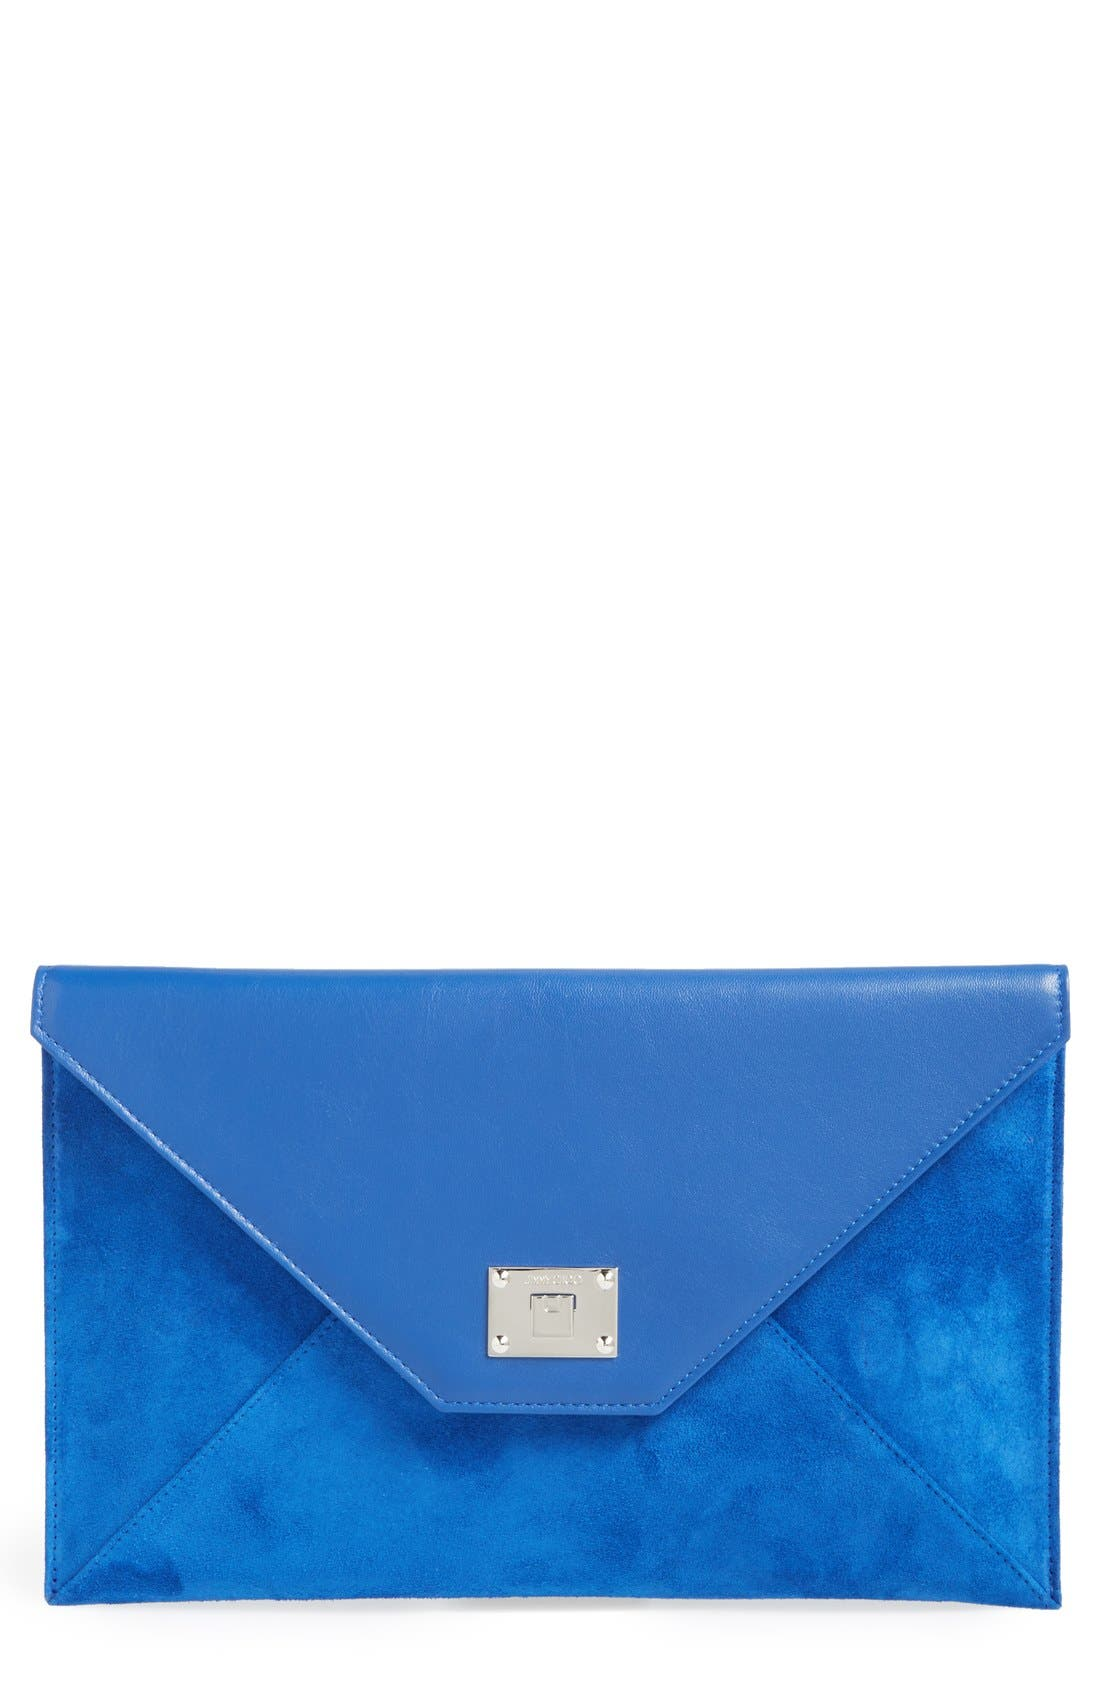 Alternate Image 1 Selected - Jimmy Choo 'Rosetta' Leather & Suede Clutch